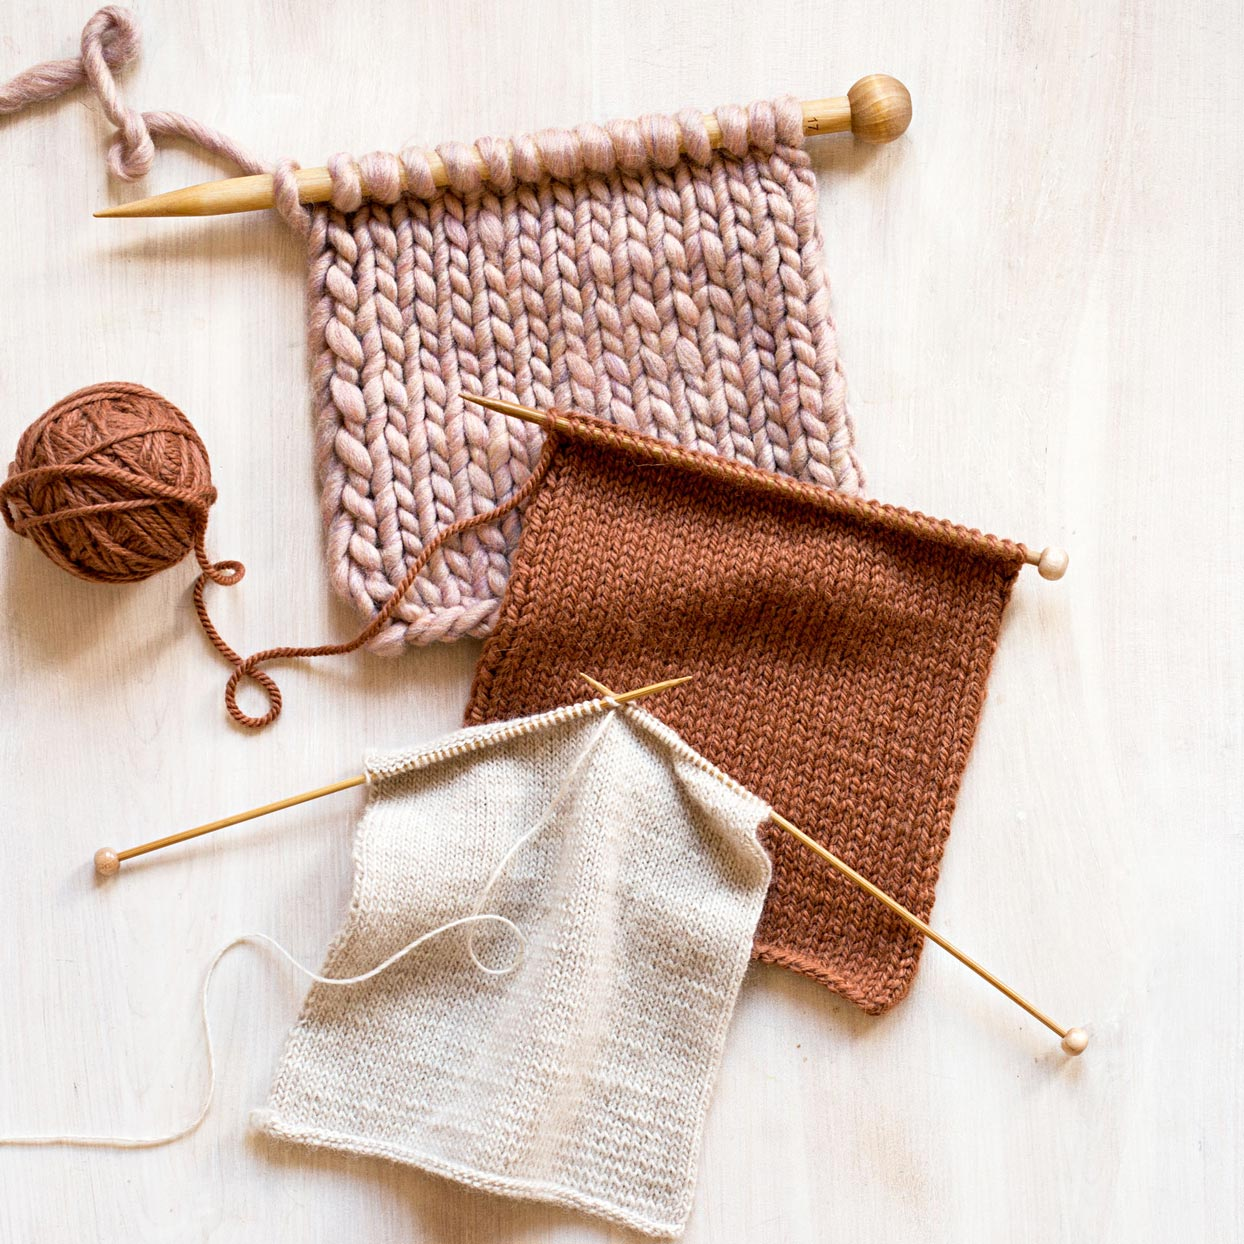 brown and white yarn